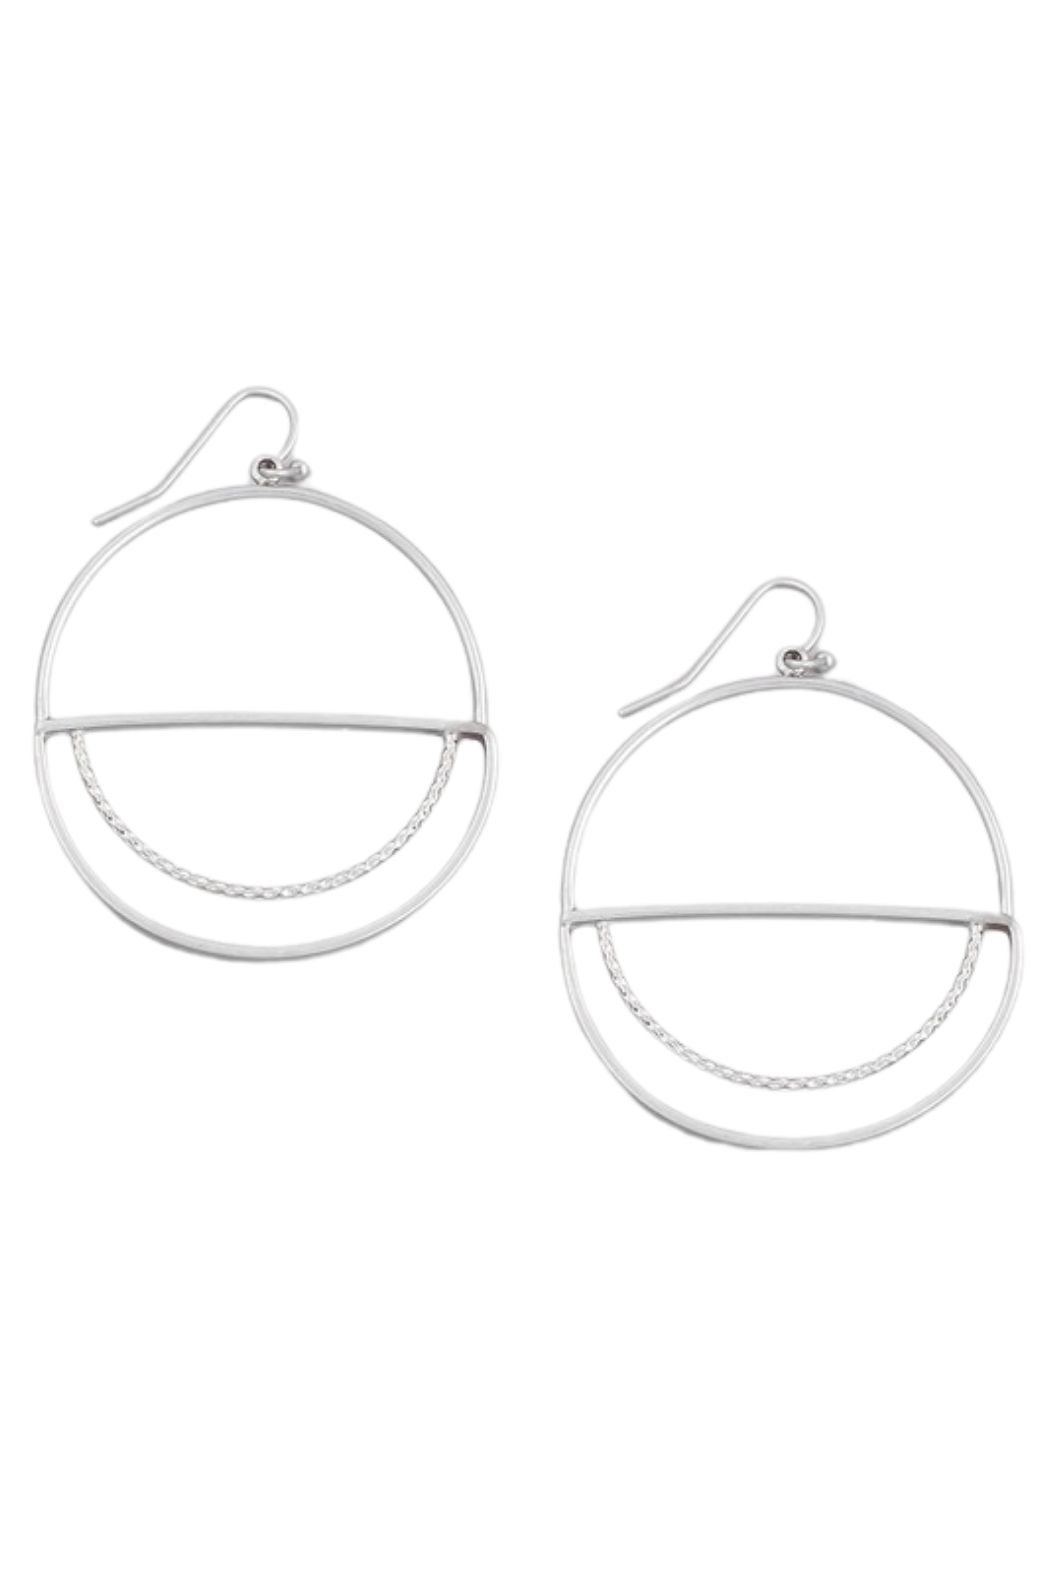 Fame Accessories Round Flat Drop Earrings - Front Cropped Image